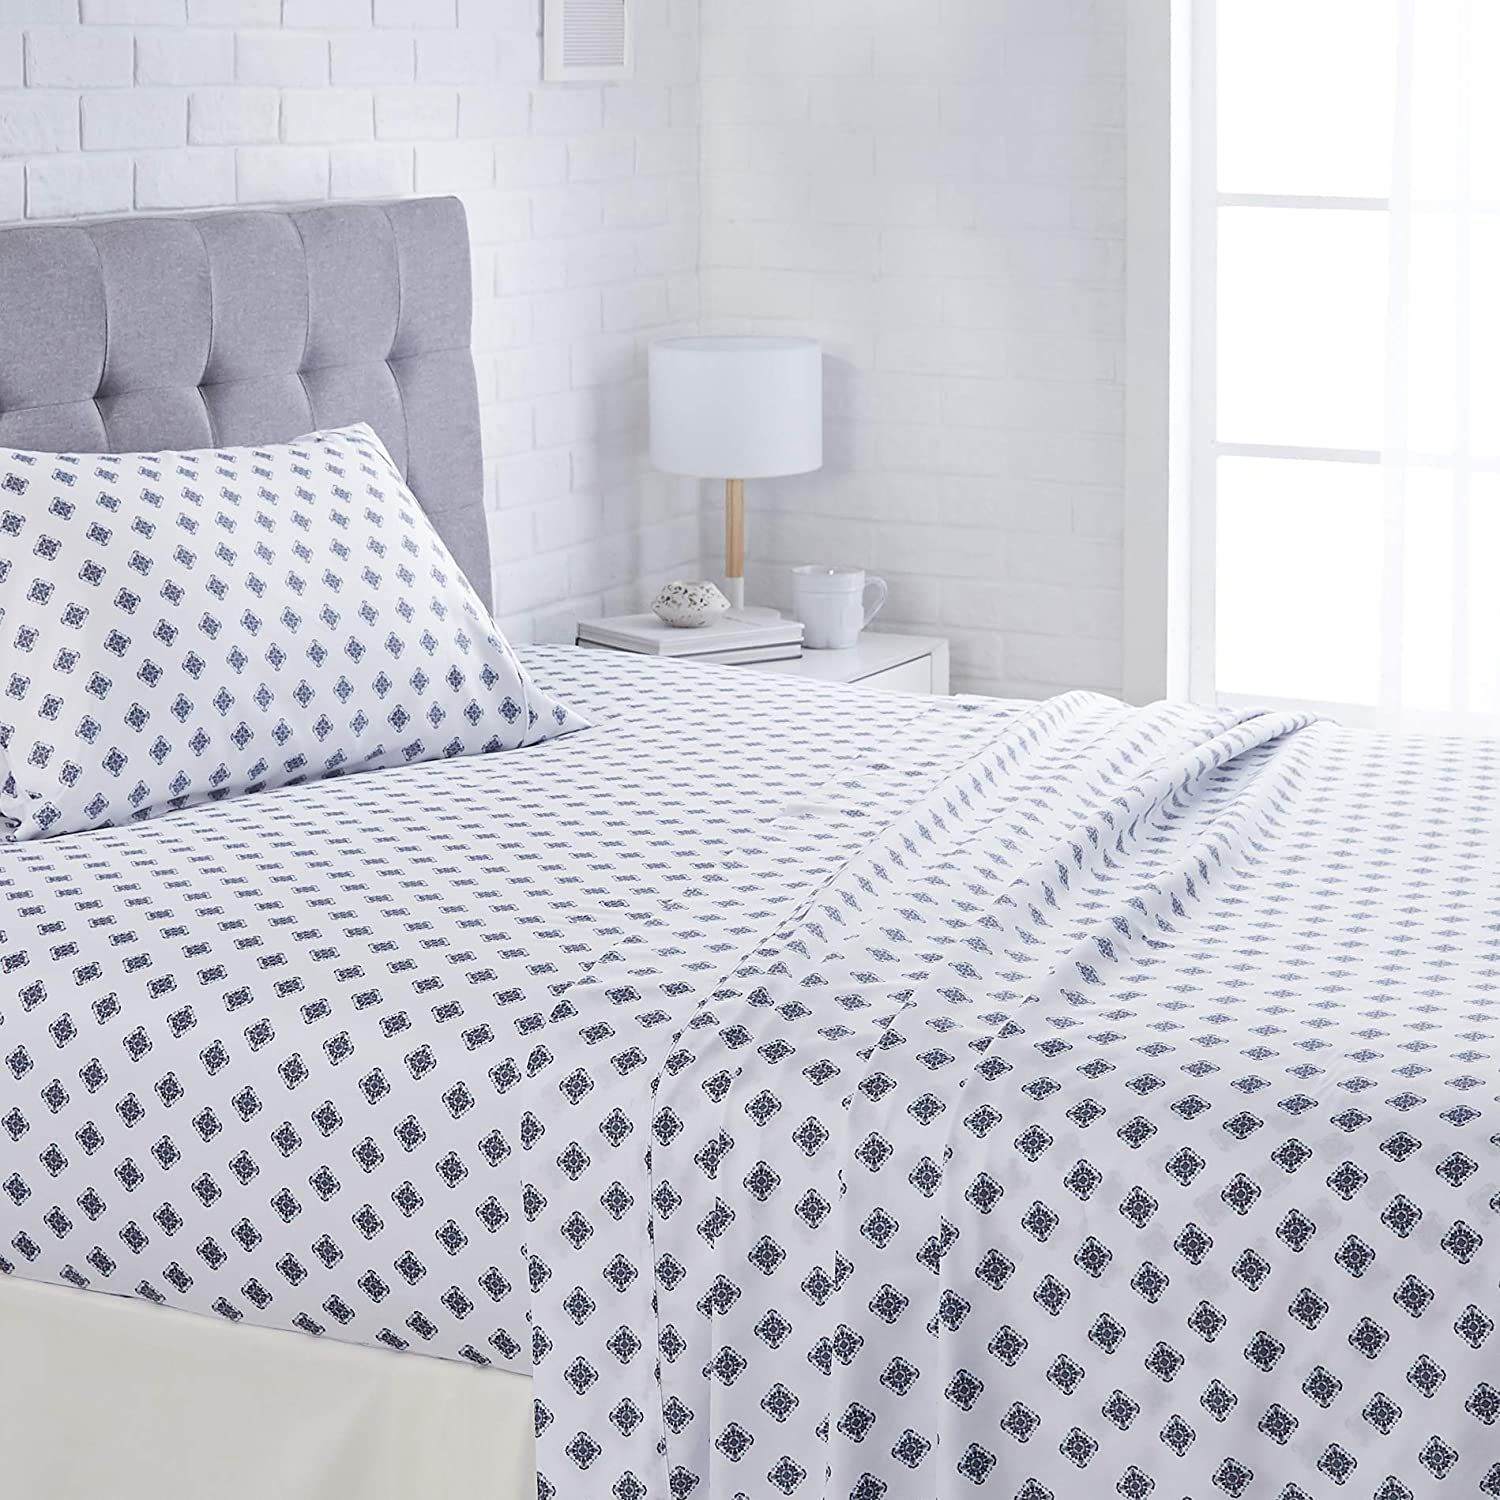 15 Best Bed Sheets On Amazon Best Amazon Sheets According To Reviews